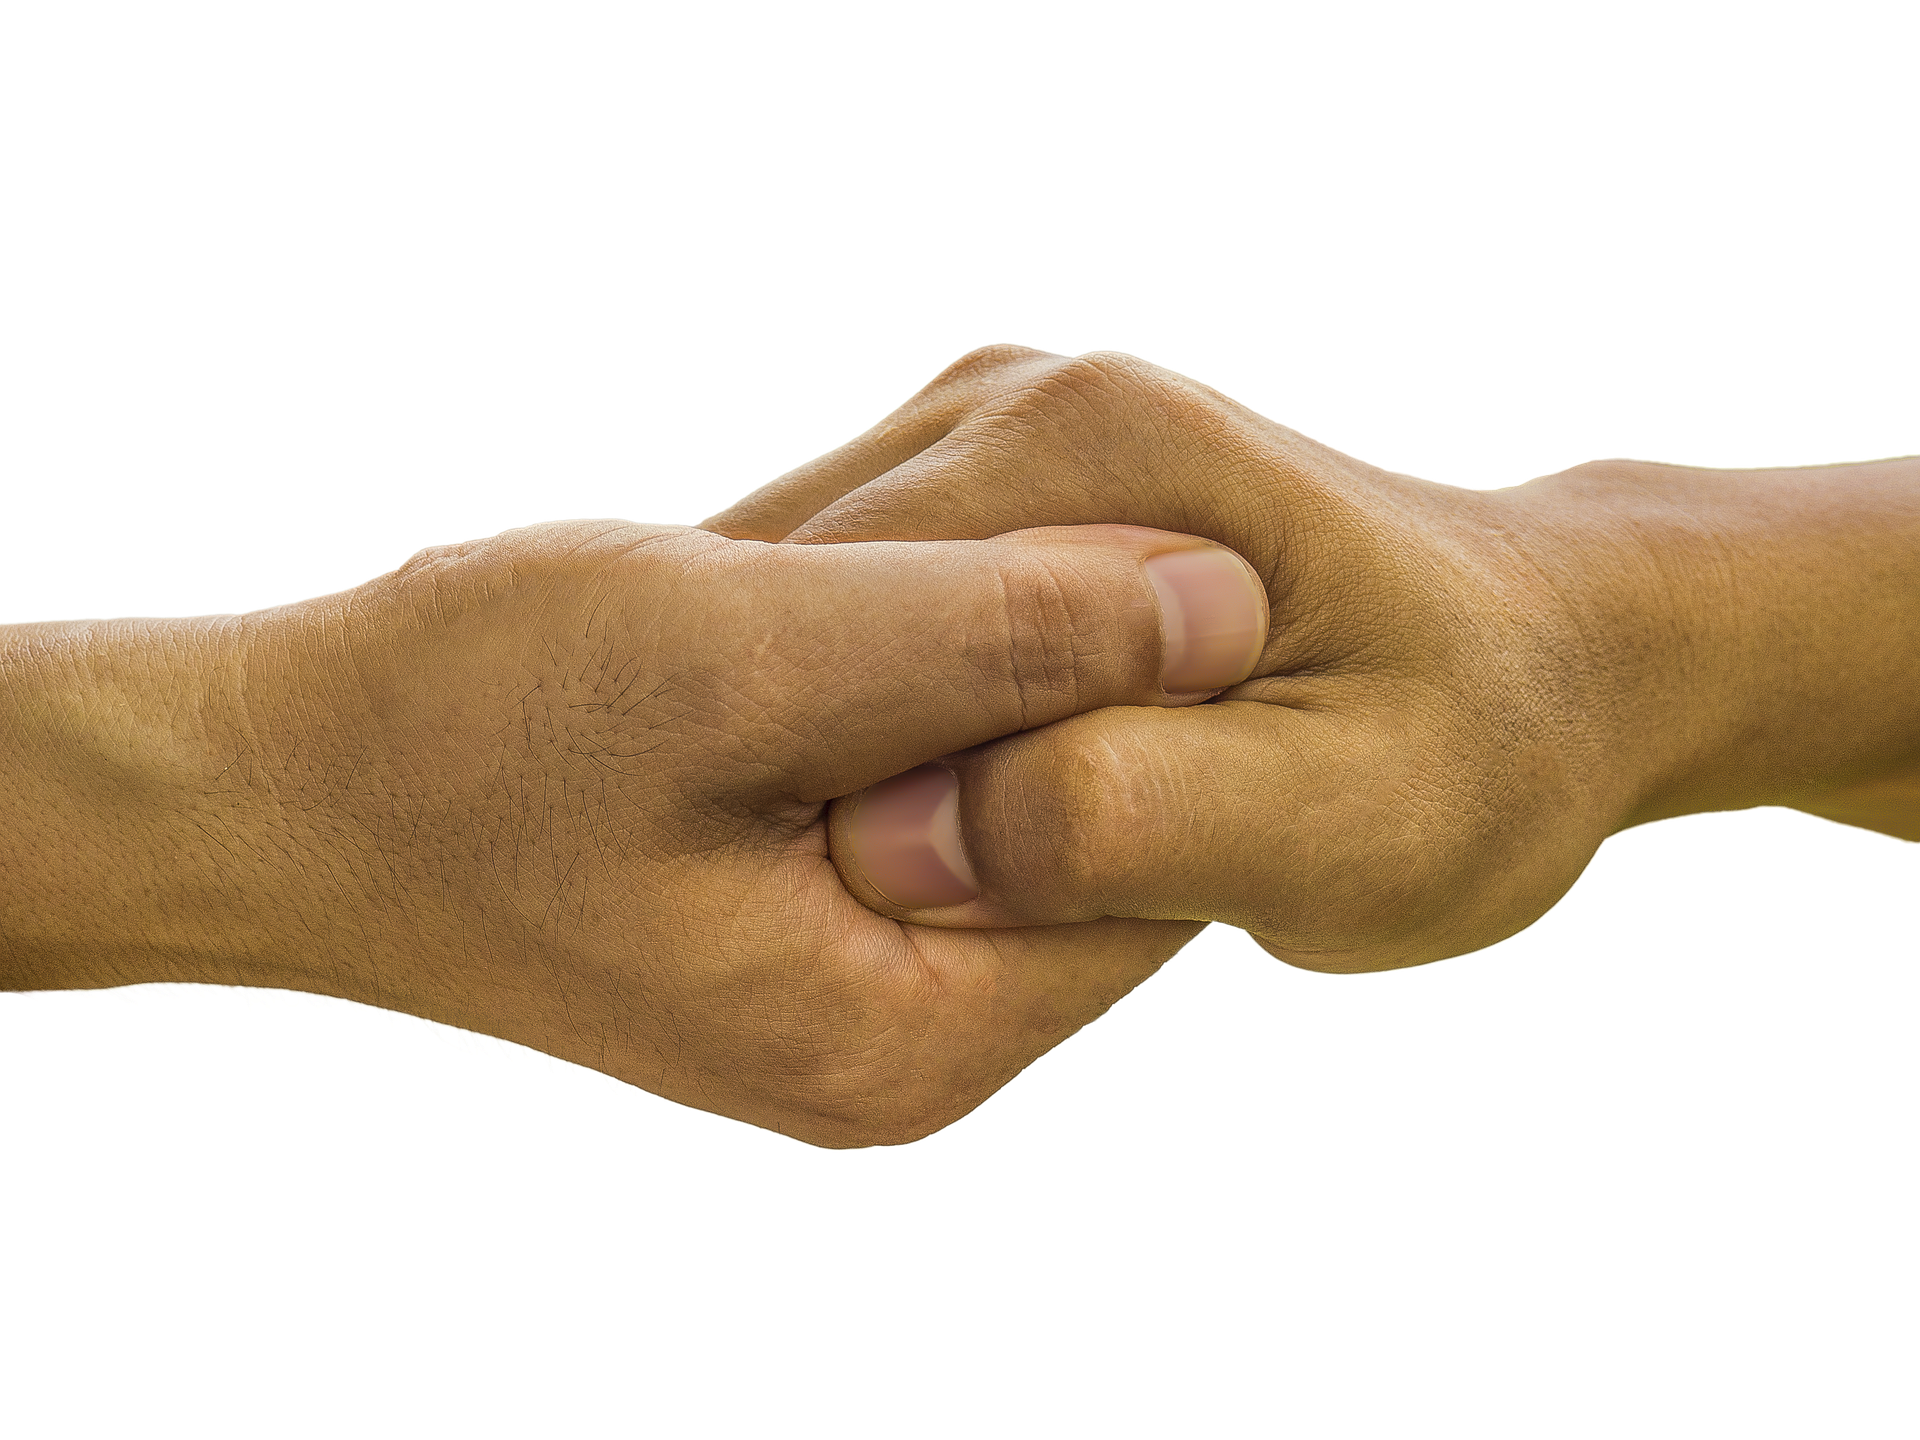 Helping hand png. Reaching out your chris